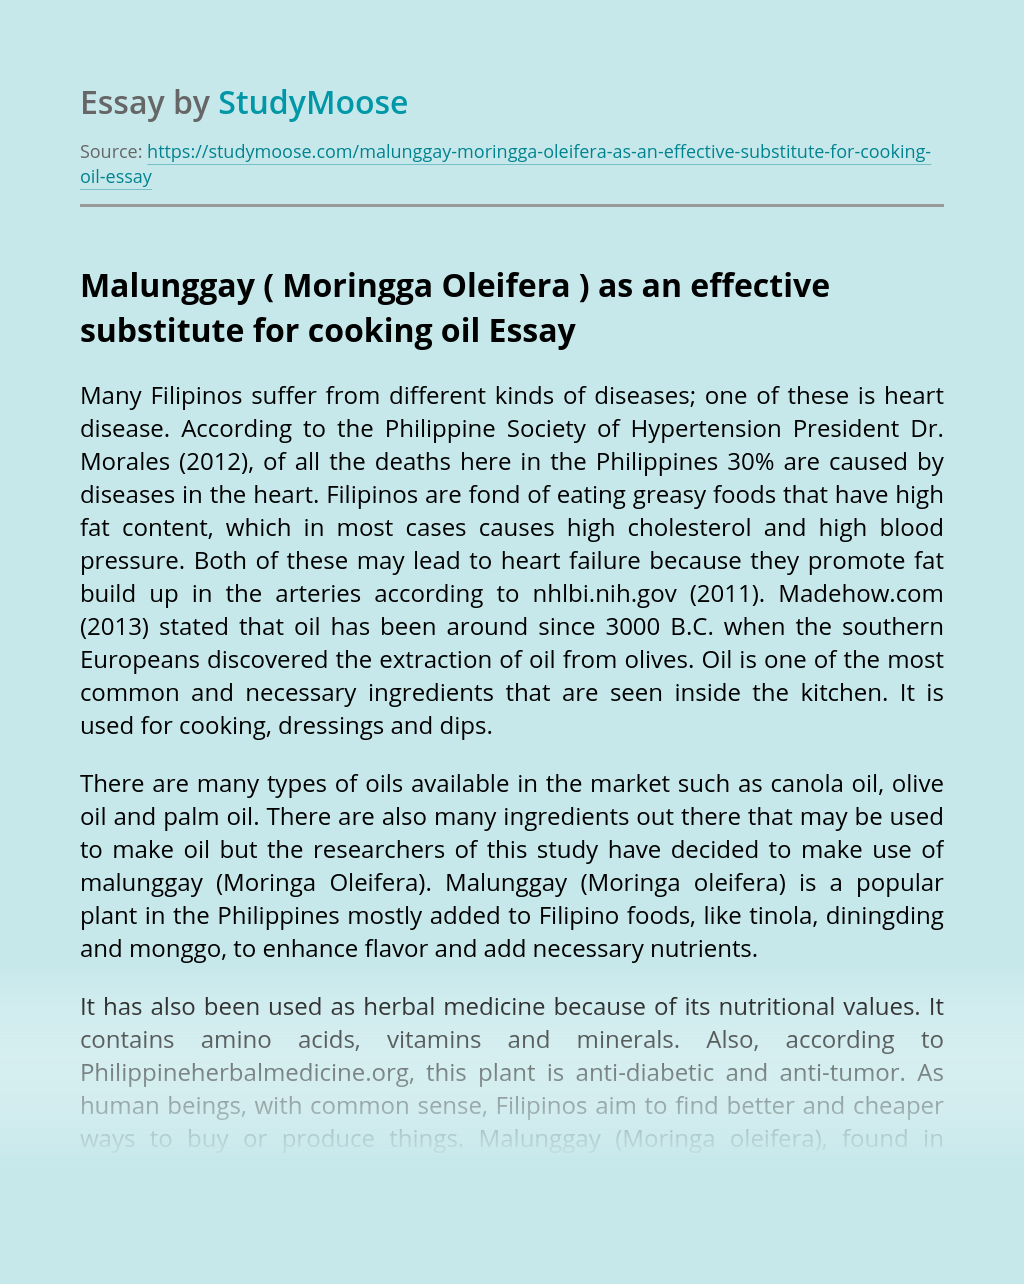 Malunggay ( Moringga Oleifera ) as an effective substitute for cooking oil